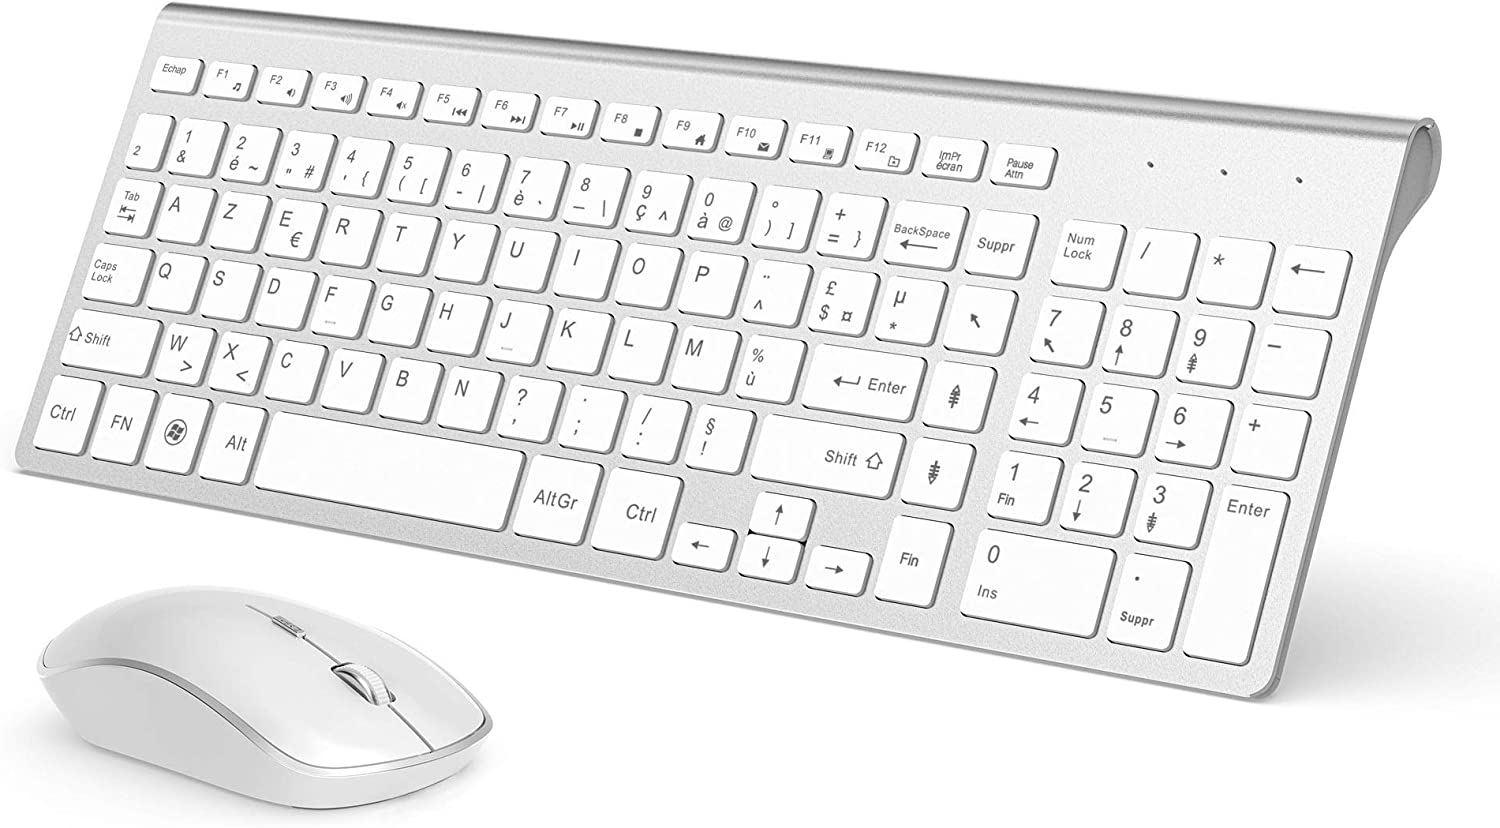 JOYACCESS - Teclado inalámbrico de 2,4 GHz Ultrafino con Teclado inalámbrico inalámbrico, silencioso 2400 dpi ergonómico para PC, Smart TV, Ordenador (QWERTY Disposition), Color Blanco y Plateado: Amazon.es: Informática